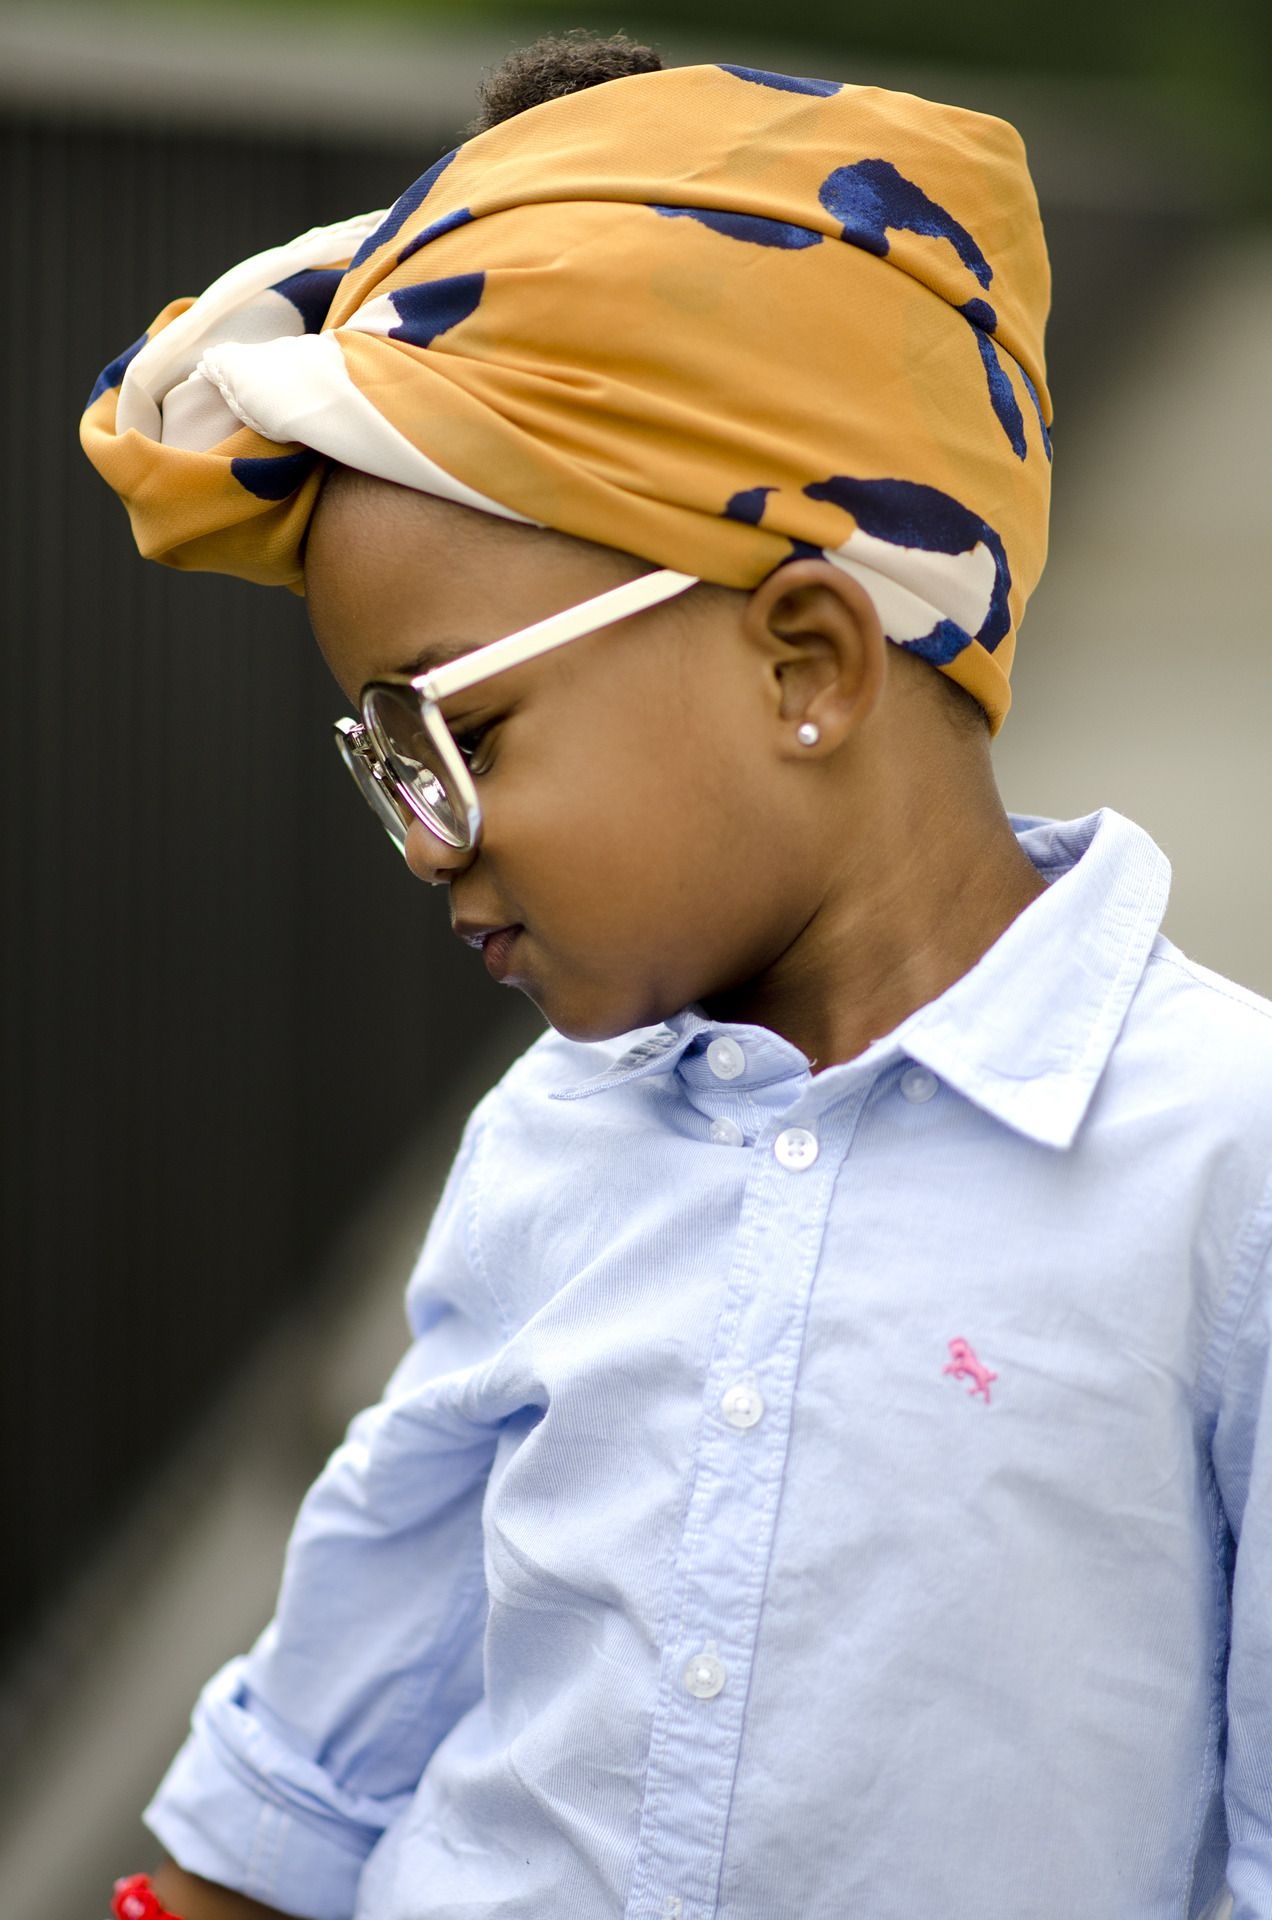 black baby girl swag in turban & sunnies (Source ...